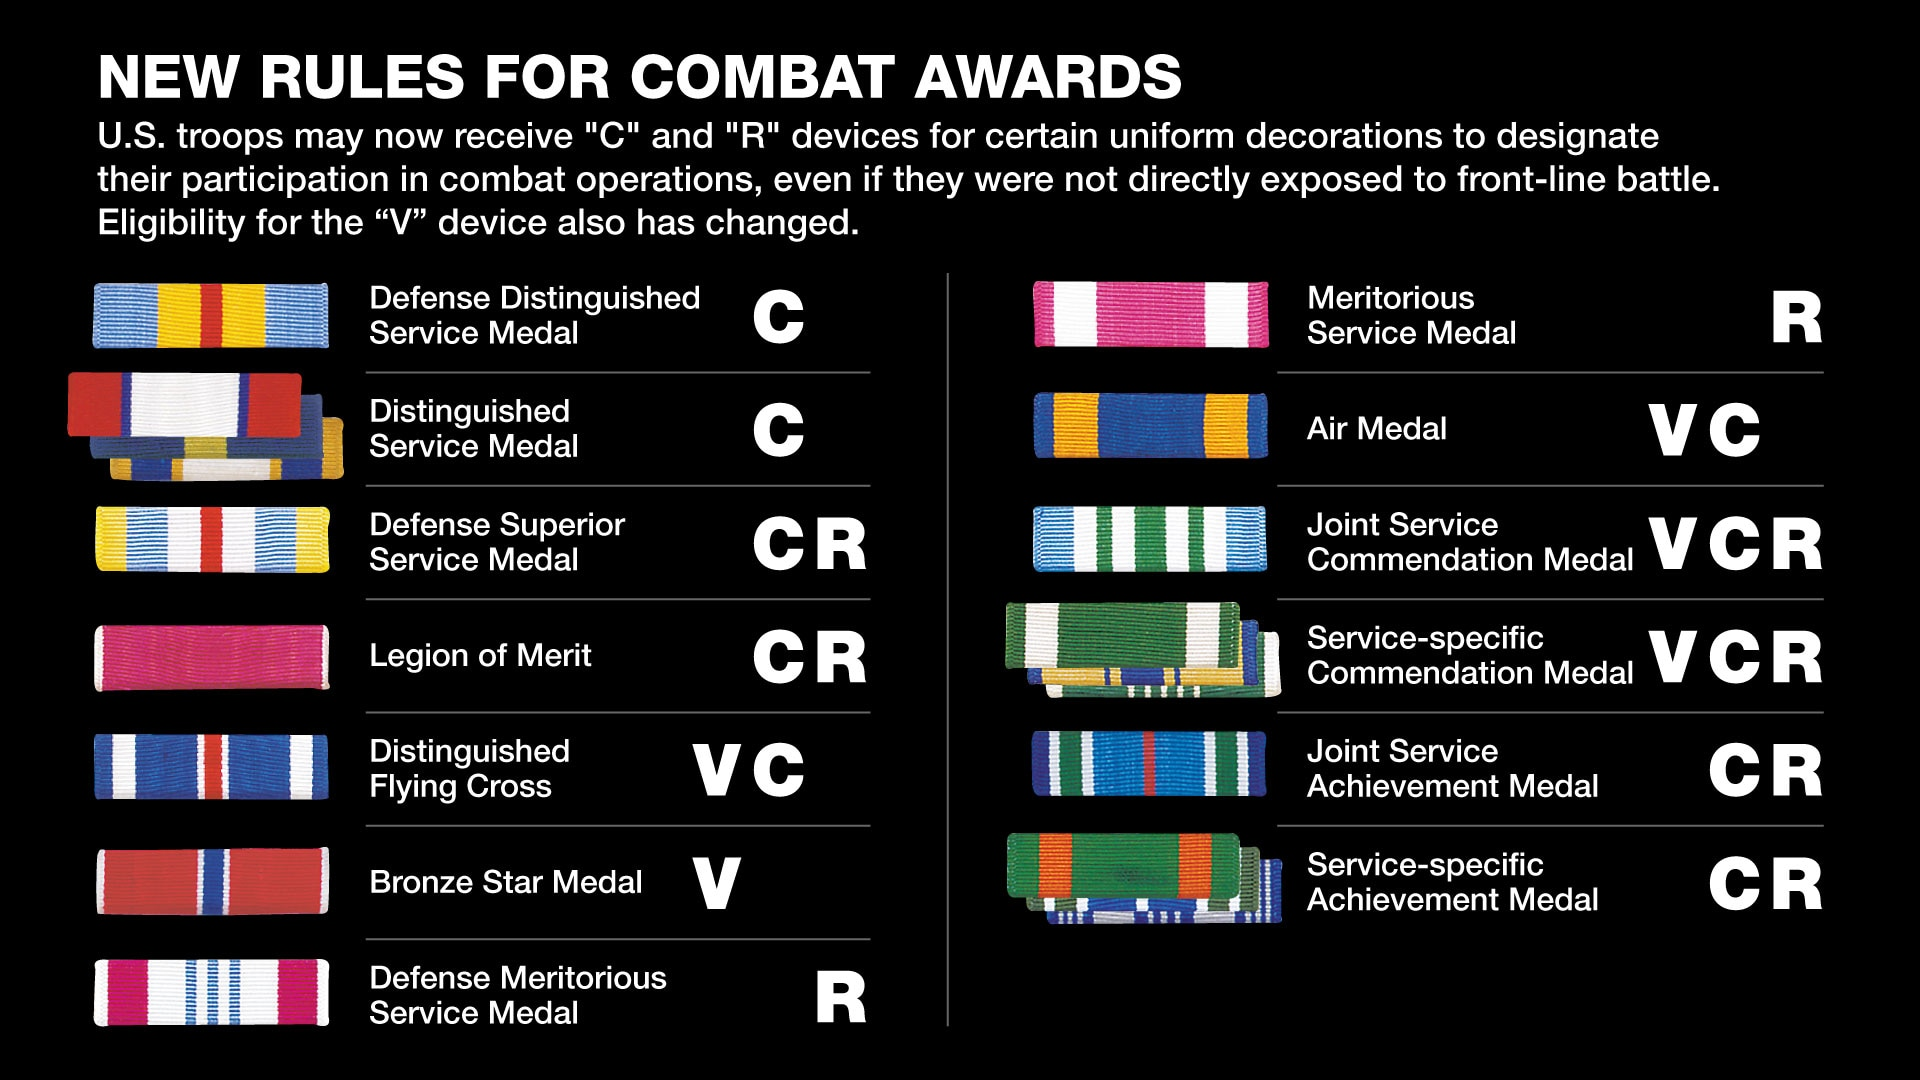 Soldiers May Be Eligible For The New C Or R Devices On